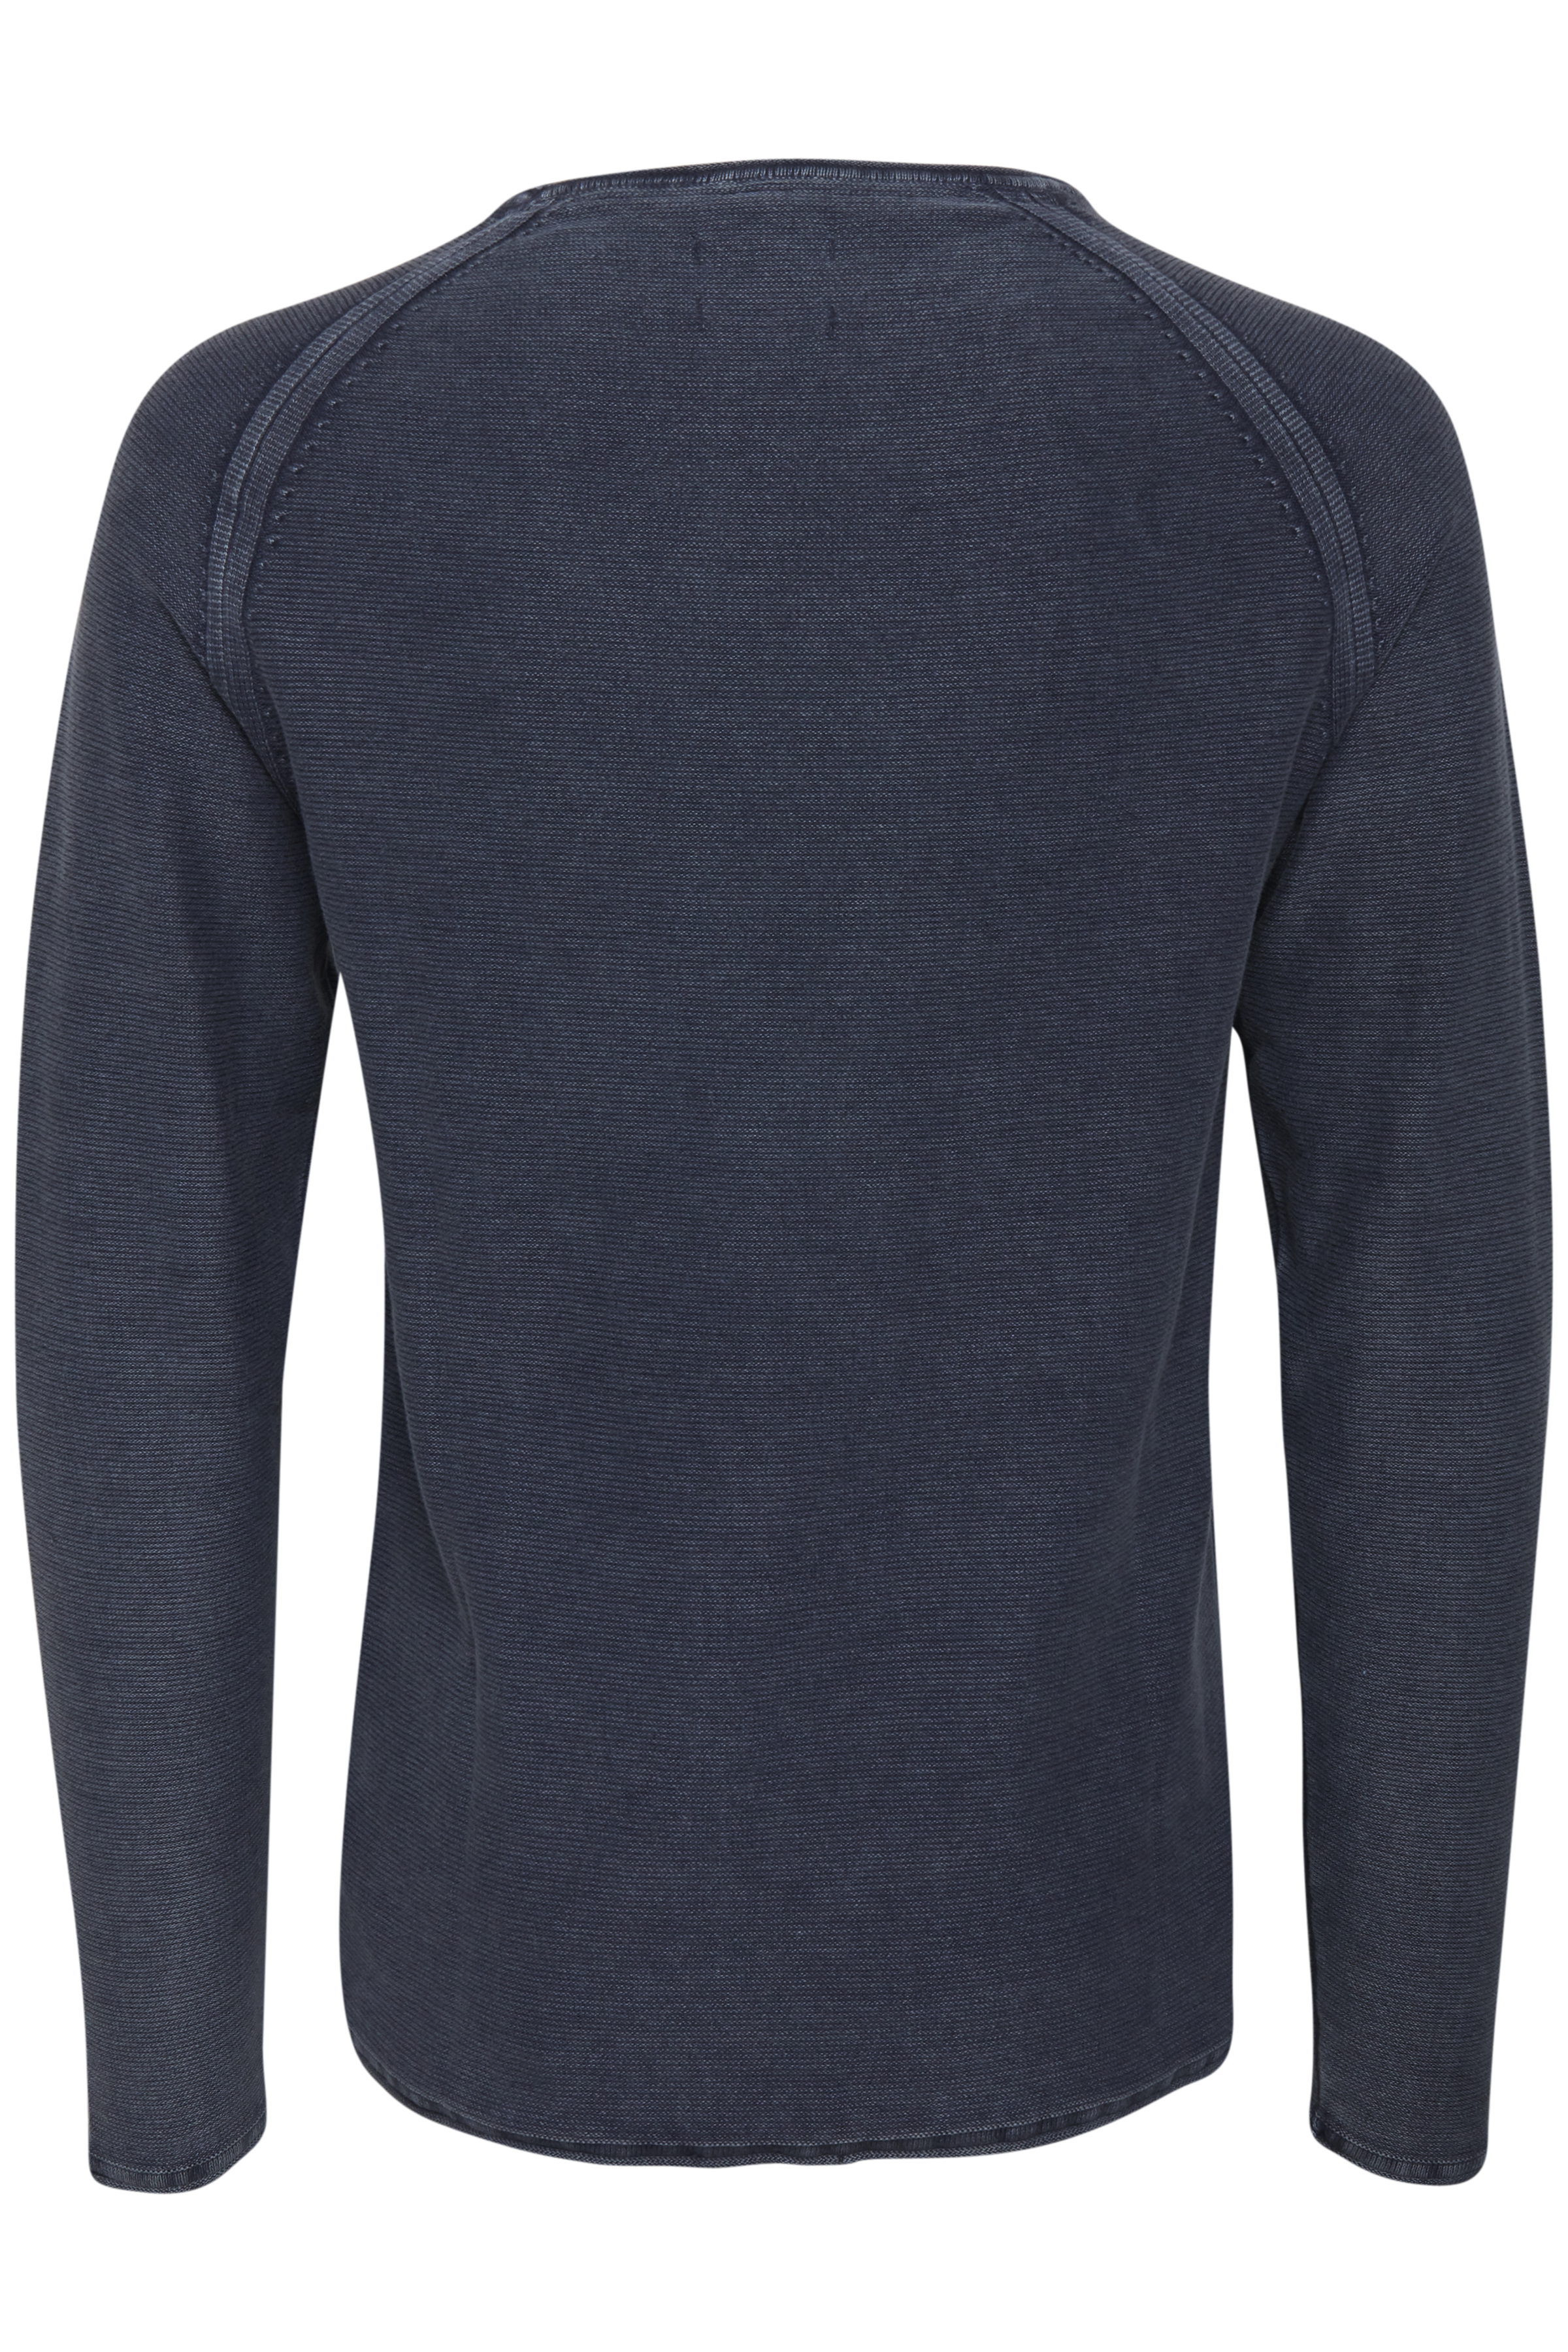 Denim Blue Strikpullover fra Blend He – Køb Denim Blue Strikpullover fra str. S-3XL her